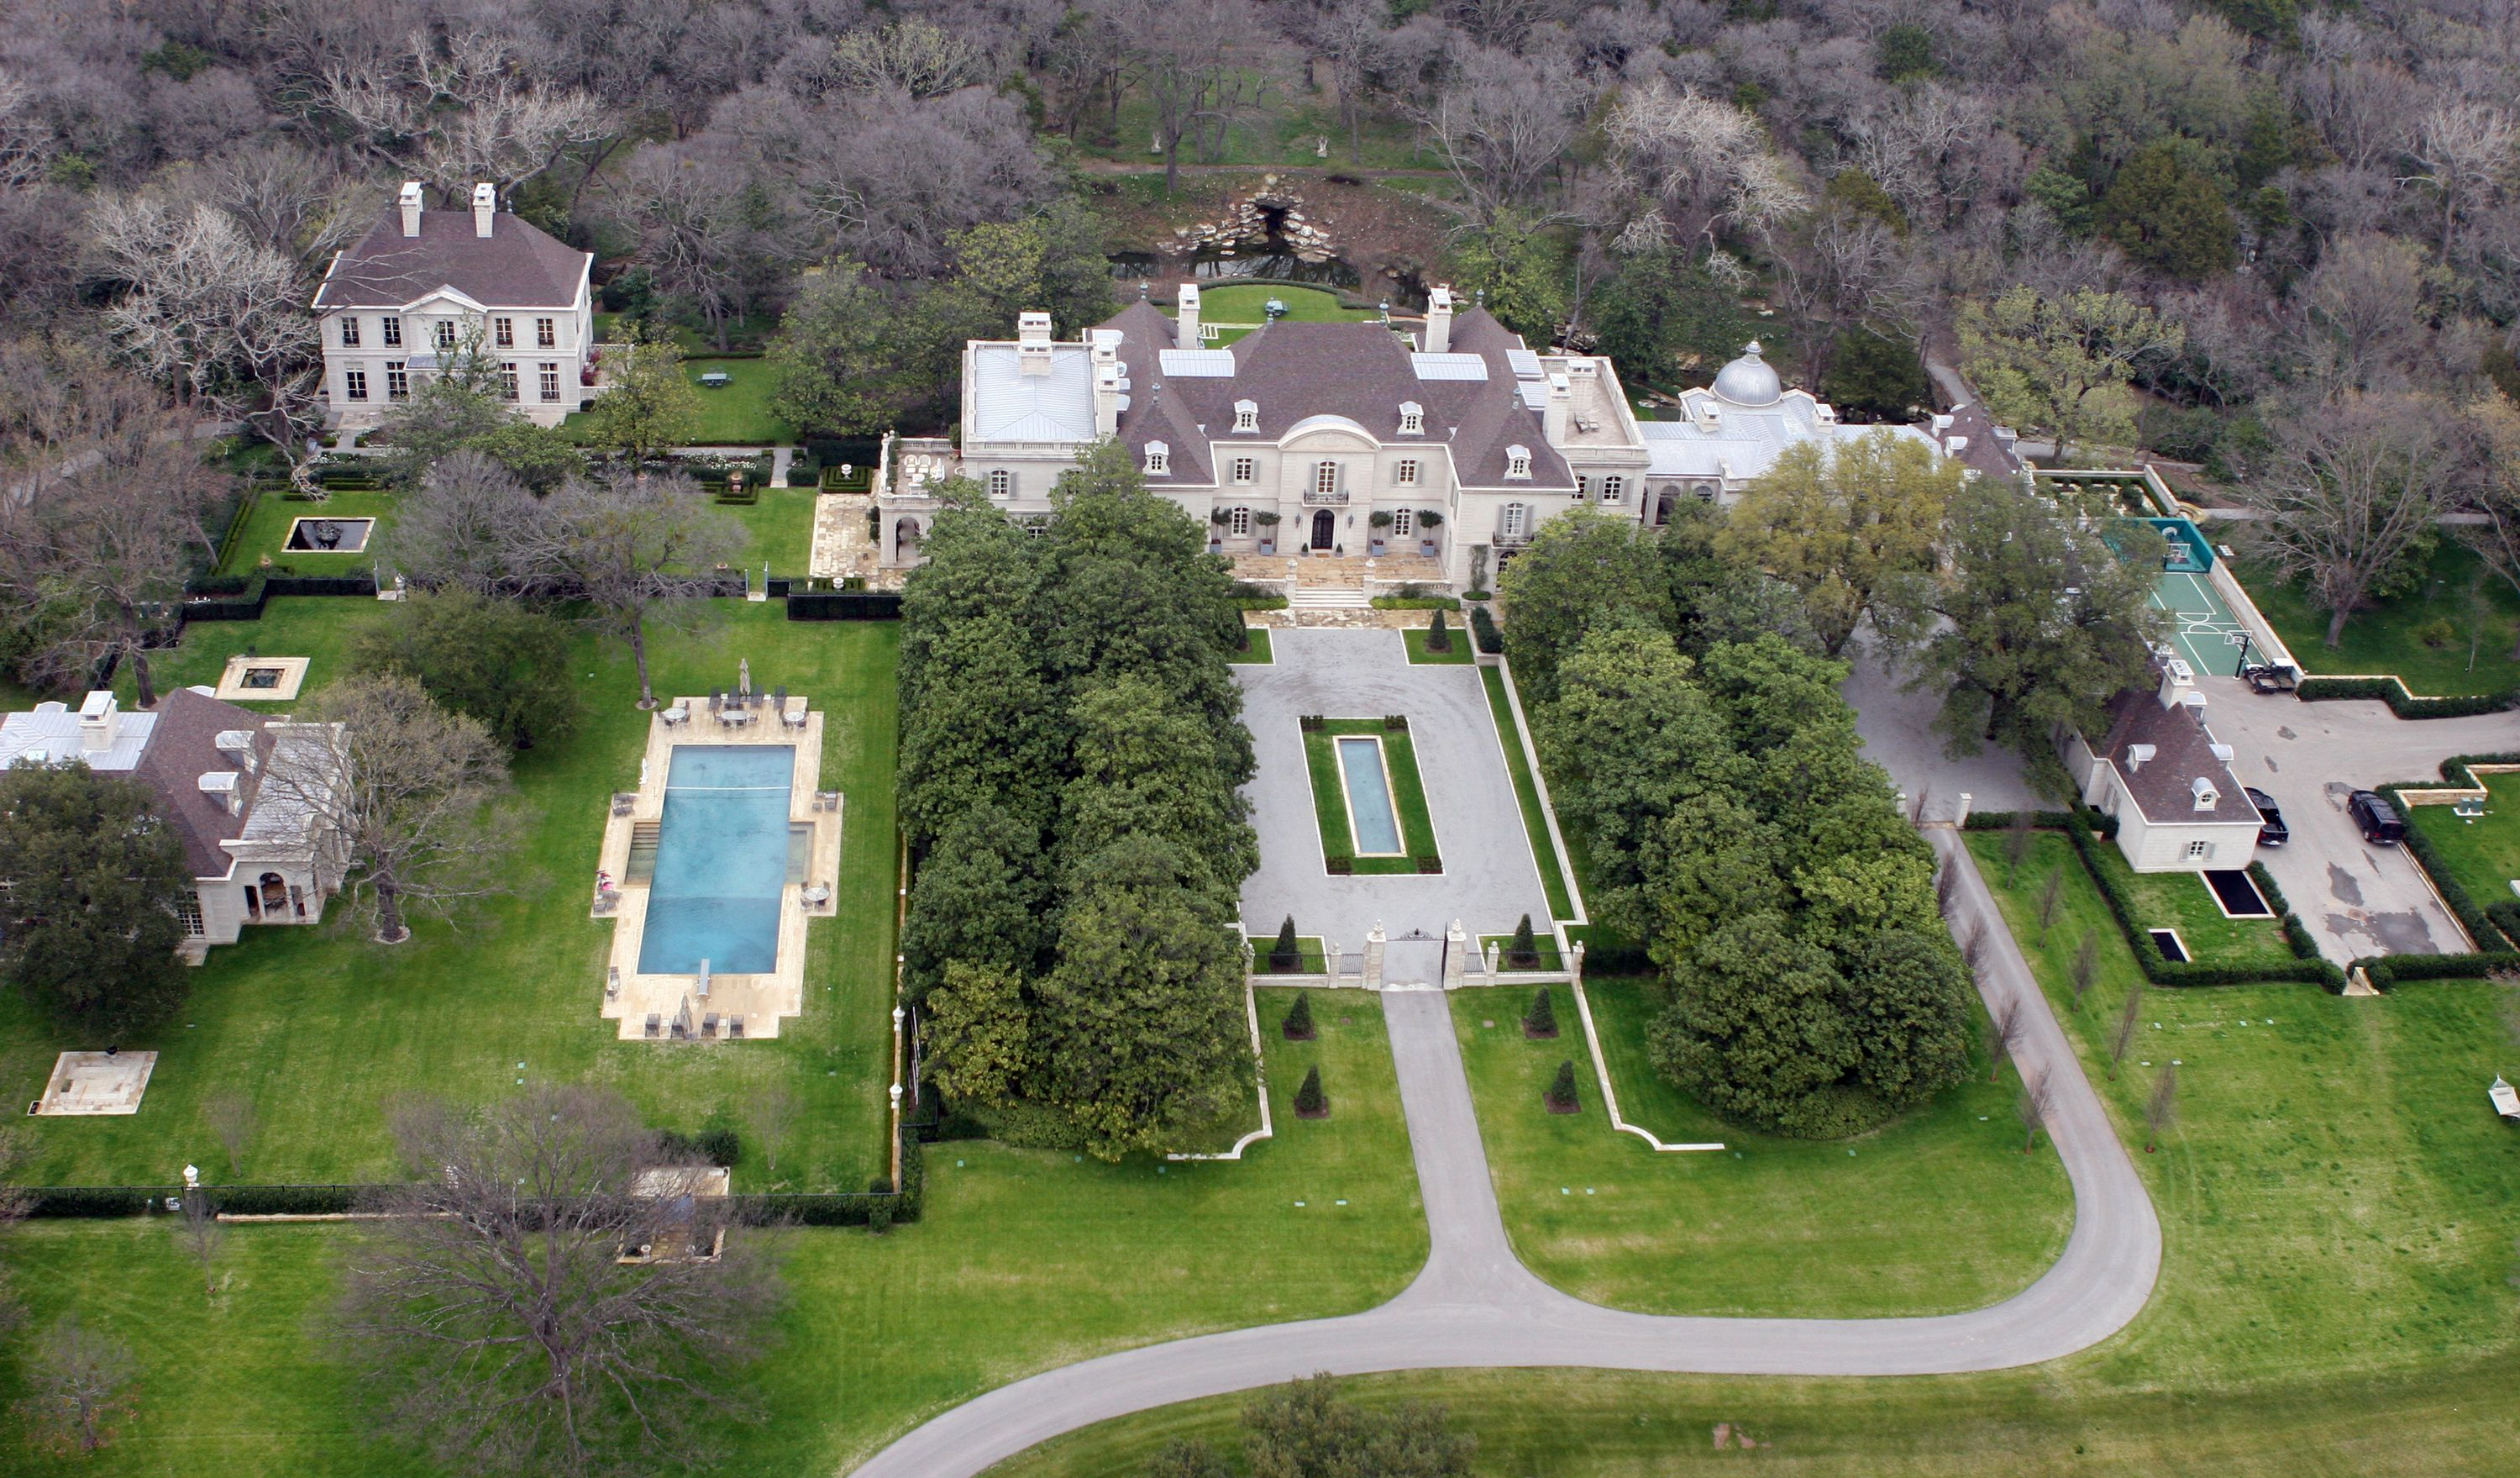 Crespi hicks estate dallas tx price 135 million now for Most expensive house in dallas